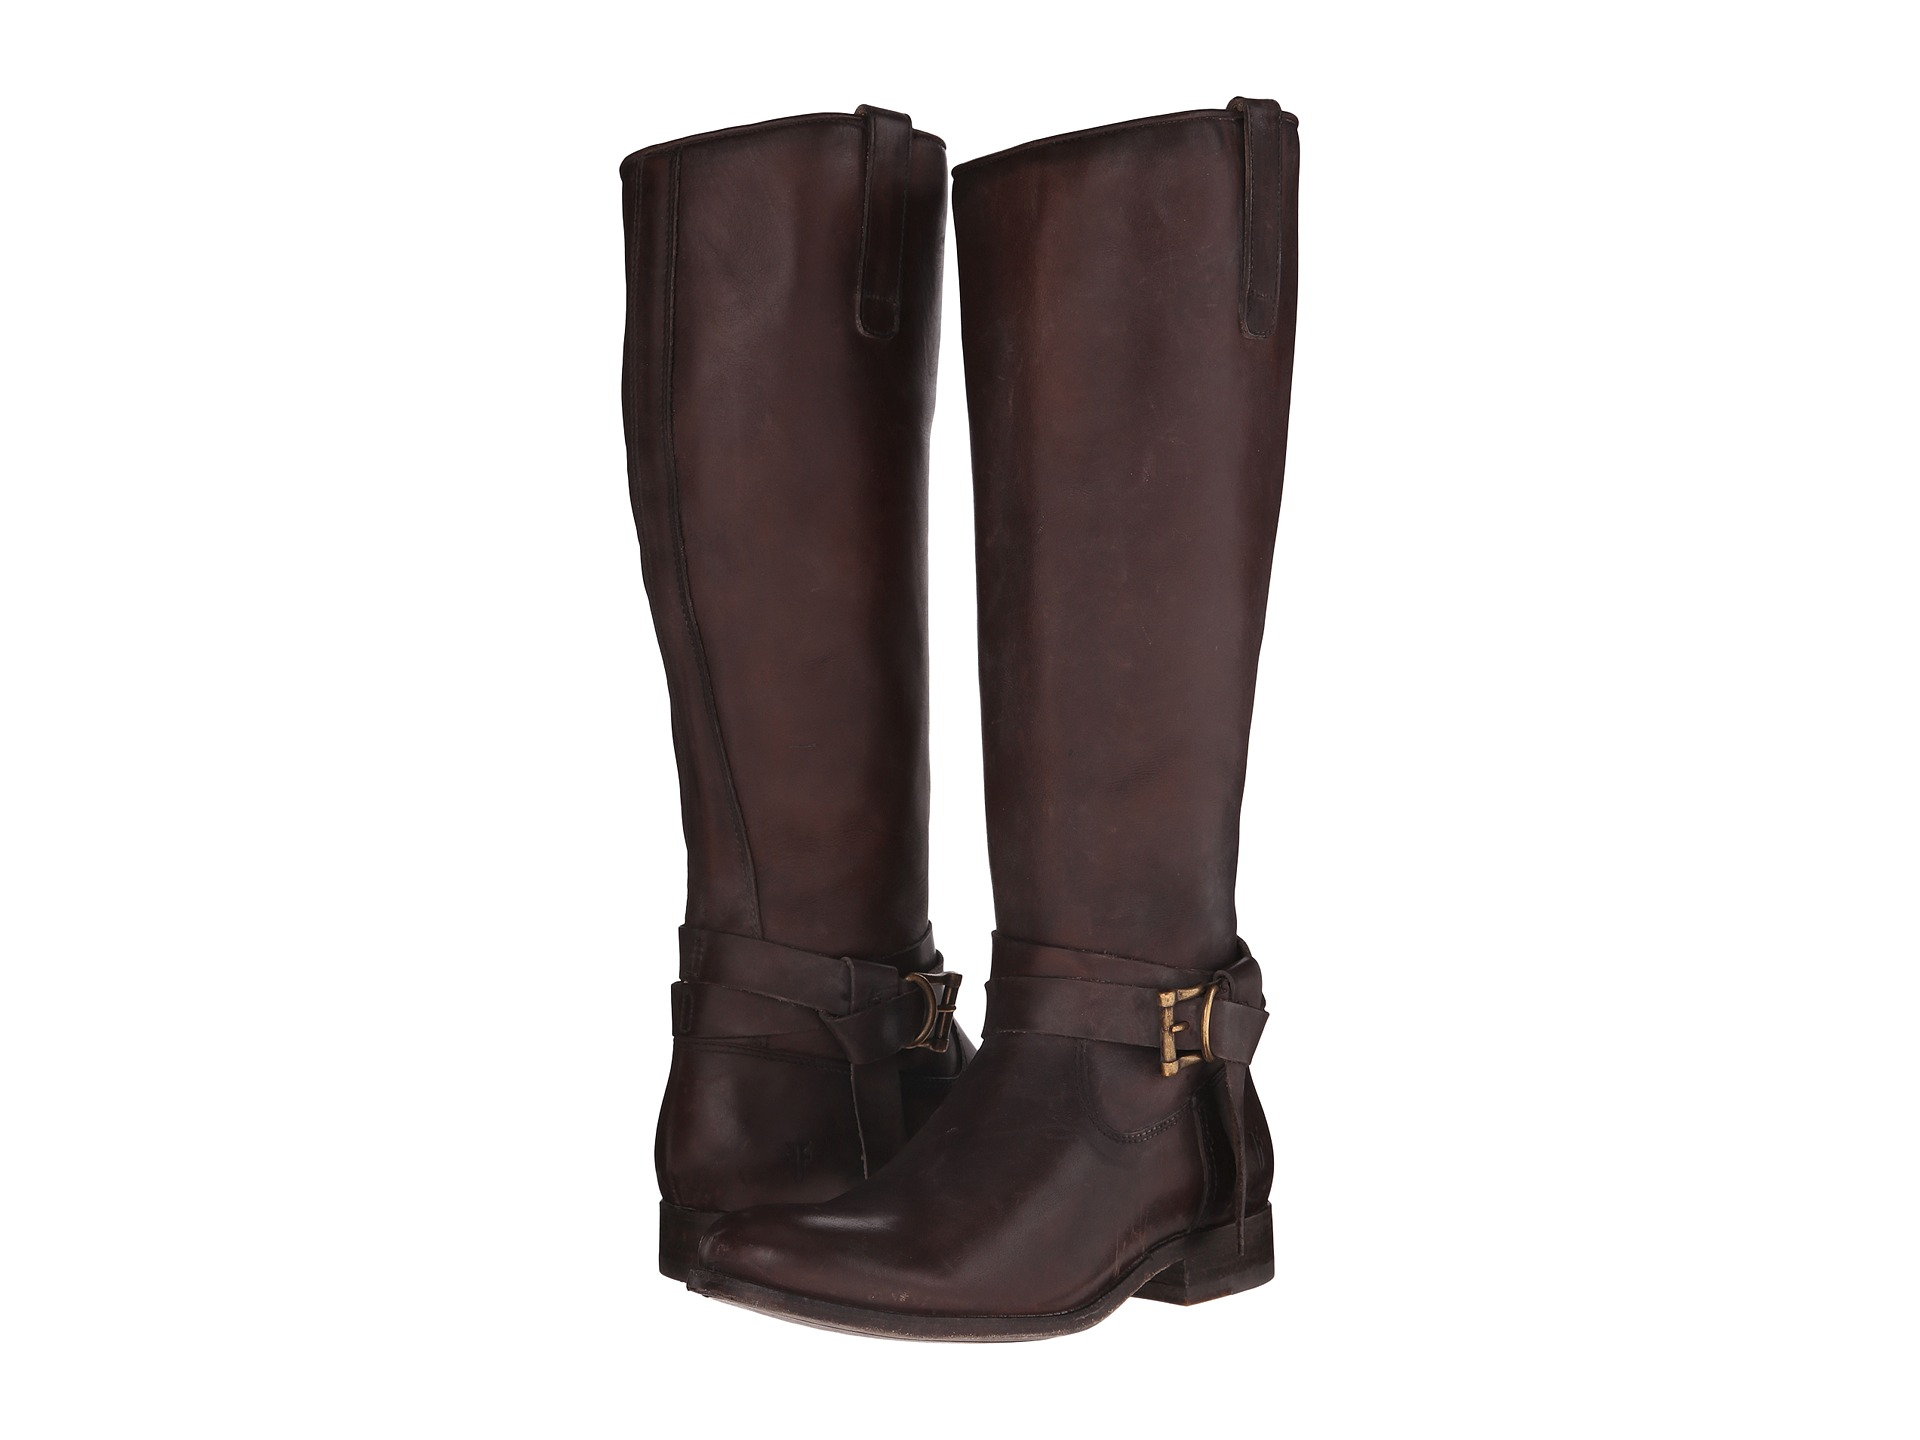 Tall Boots For Women tg29Mp2H